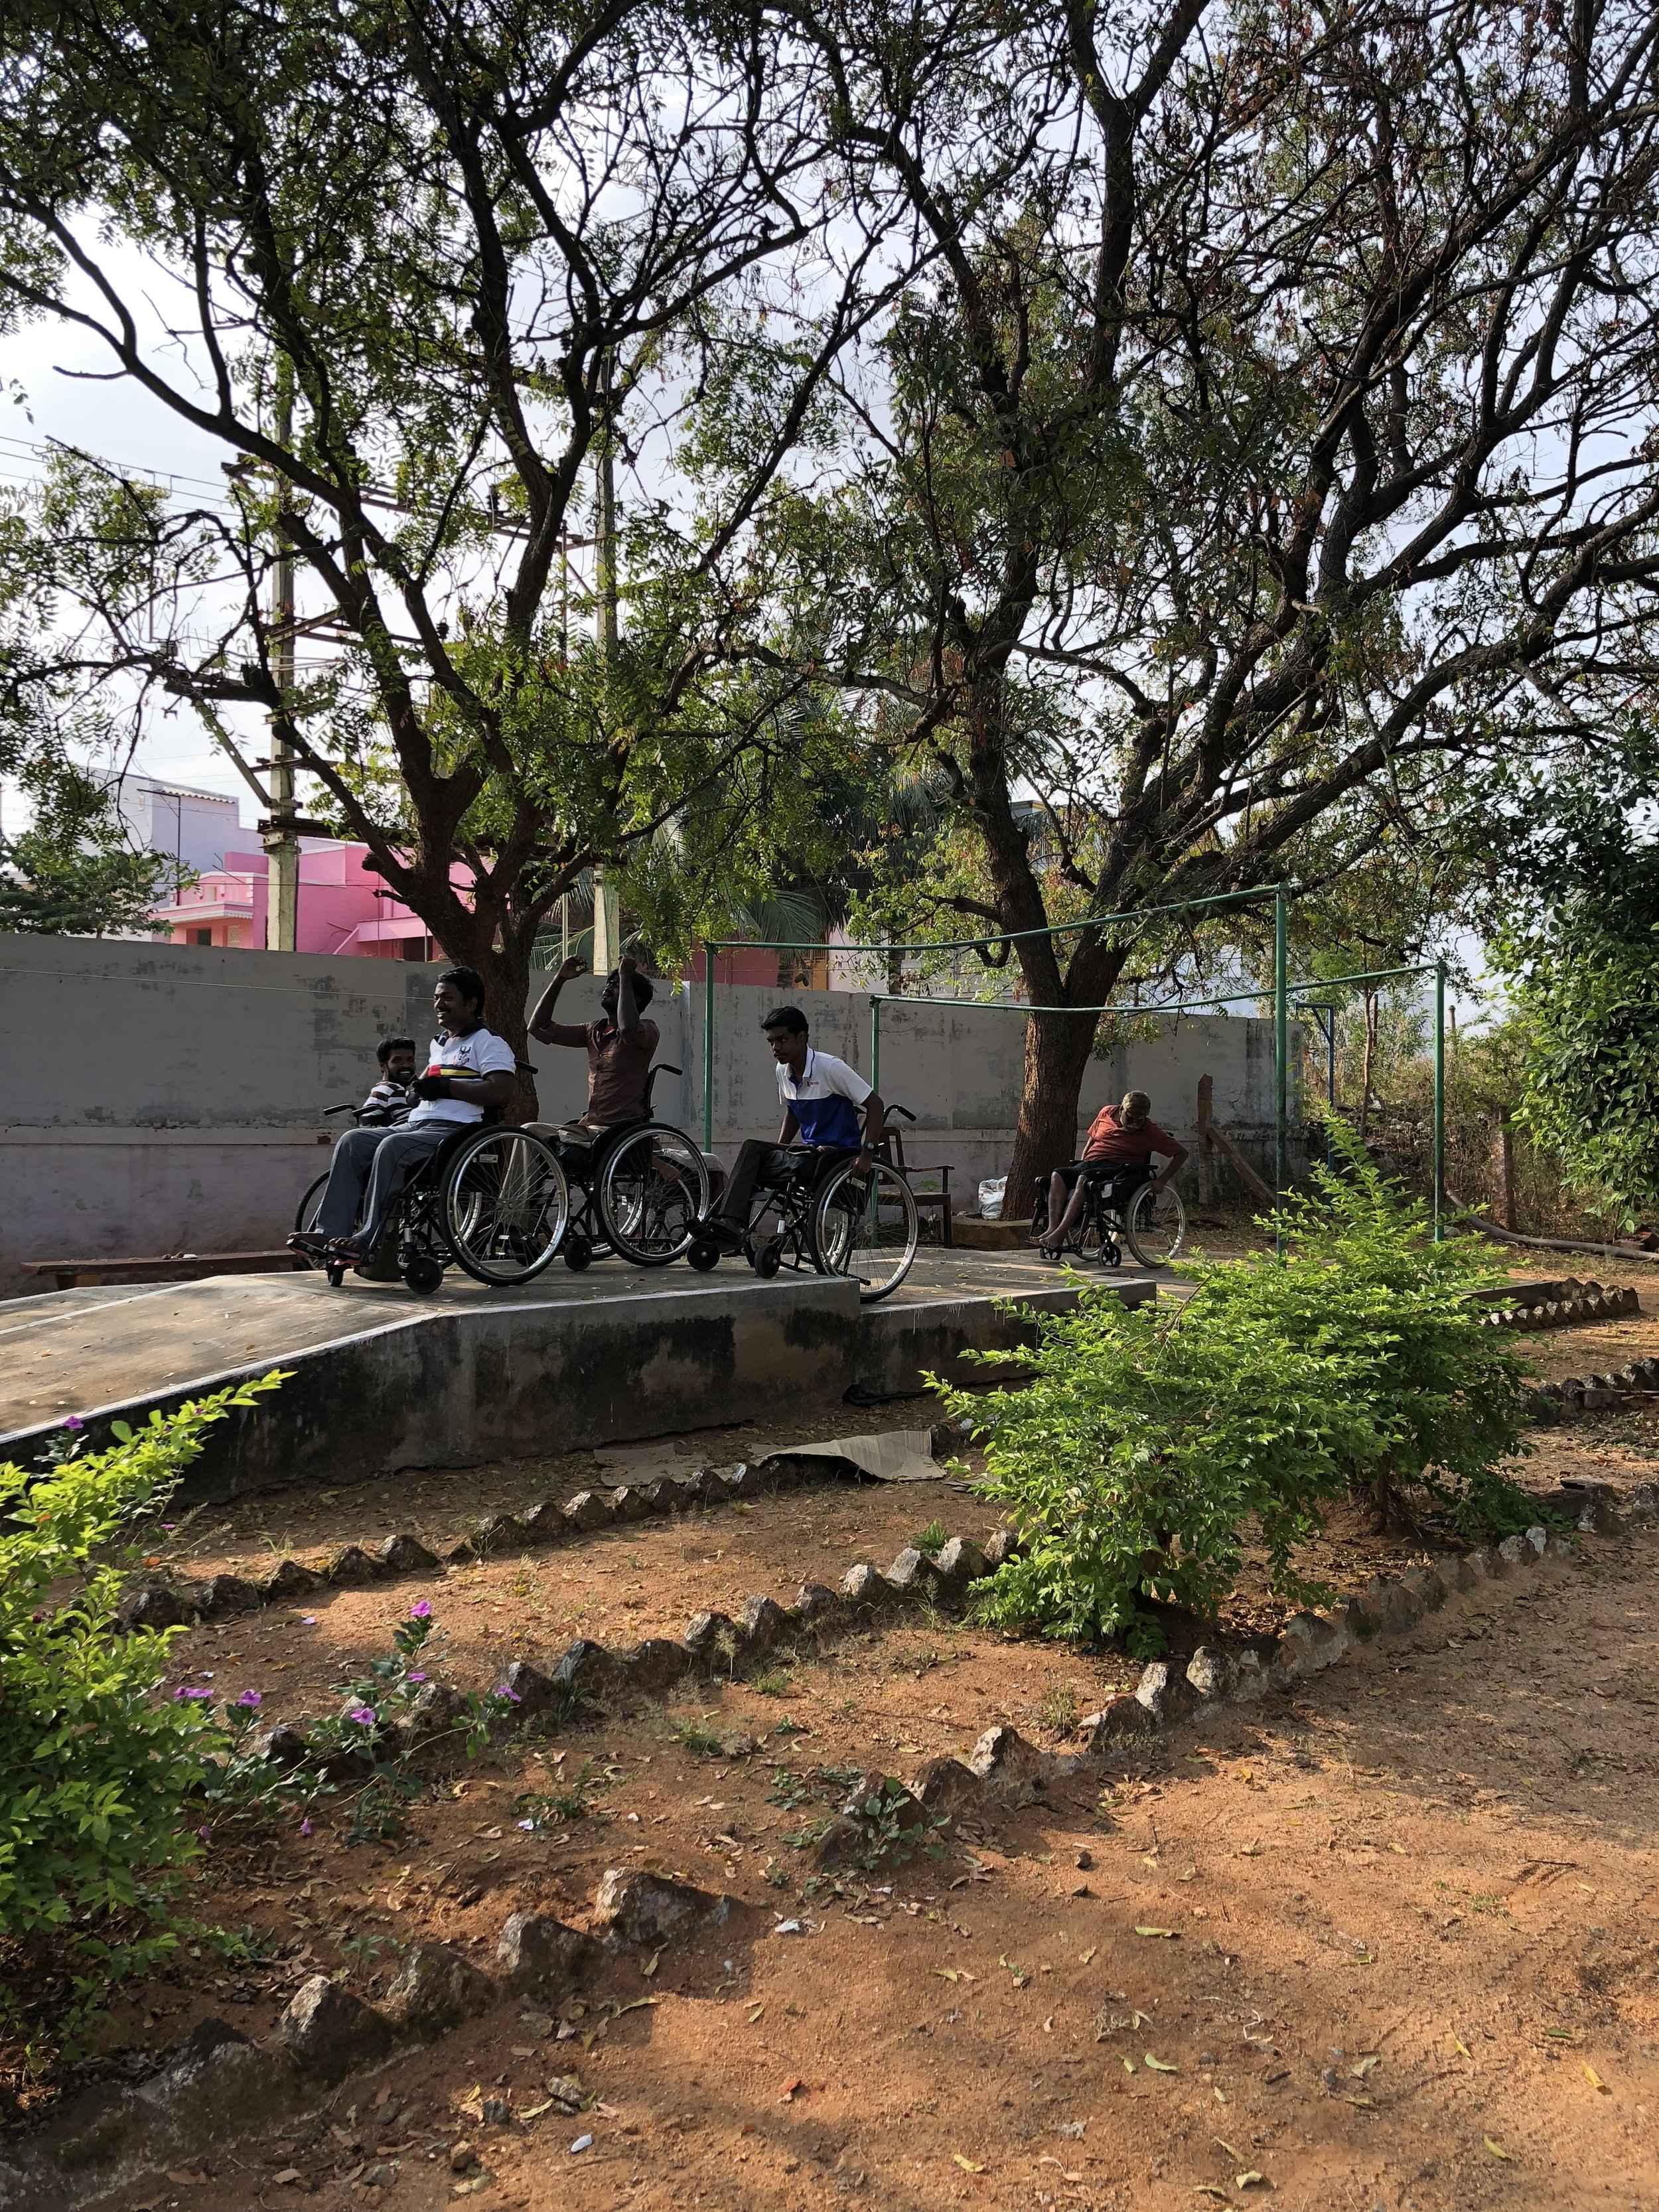 Wheelchair training at the outdoor course (equipped with ramps, stairs, gravel, dirt paths, road bumps)